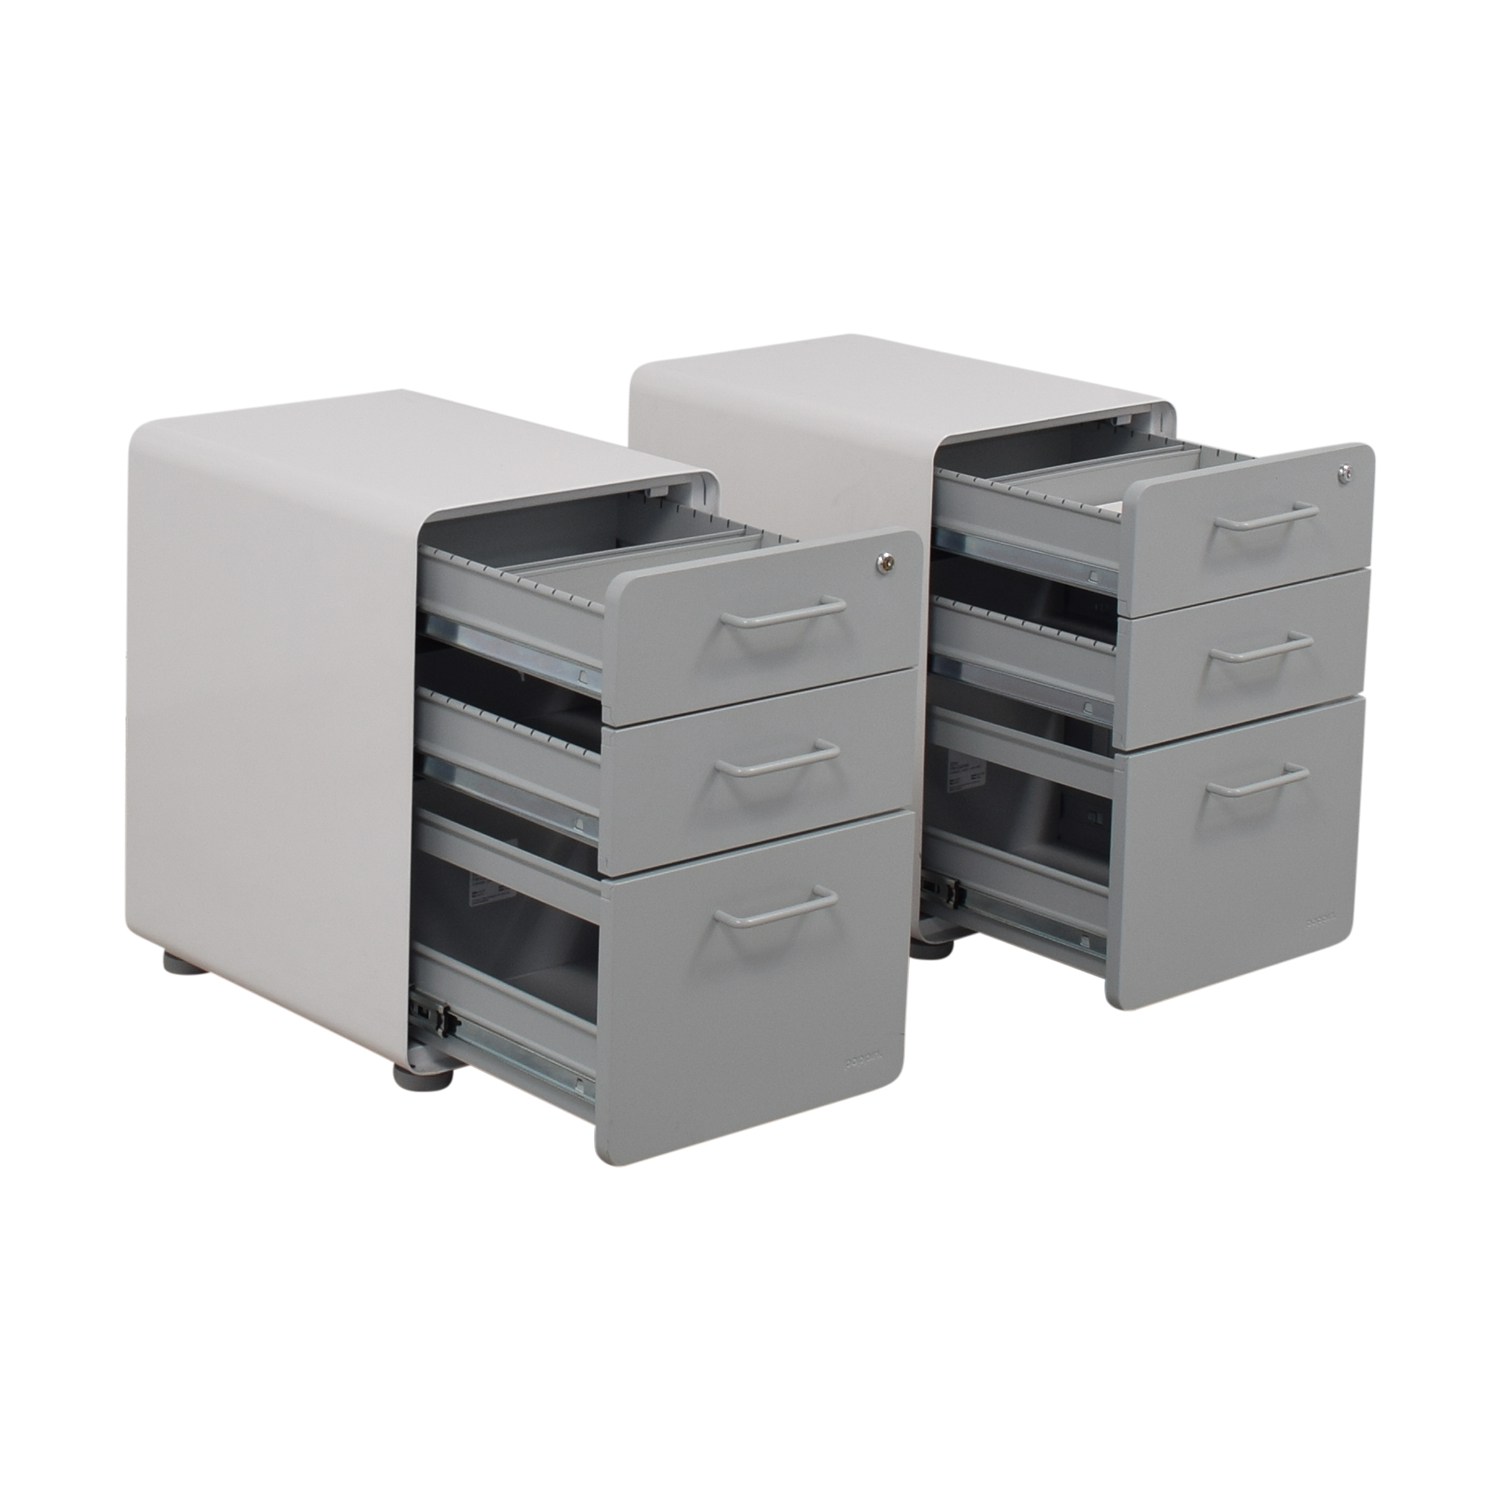 Poppin Poppin White and Grey Rolling Three-Drawer File Cabinets nj